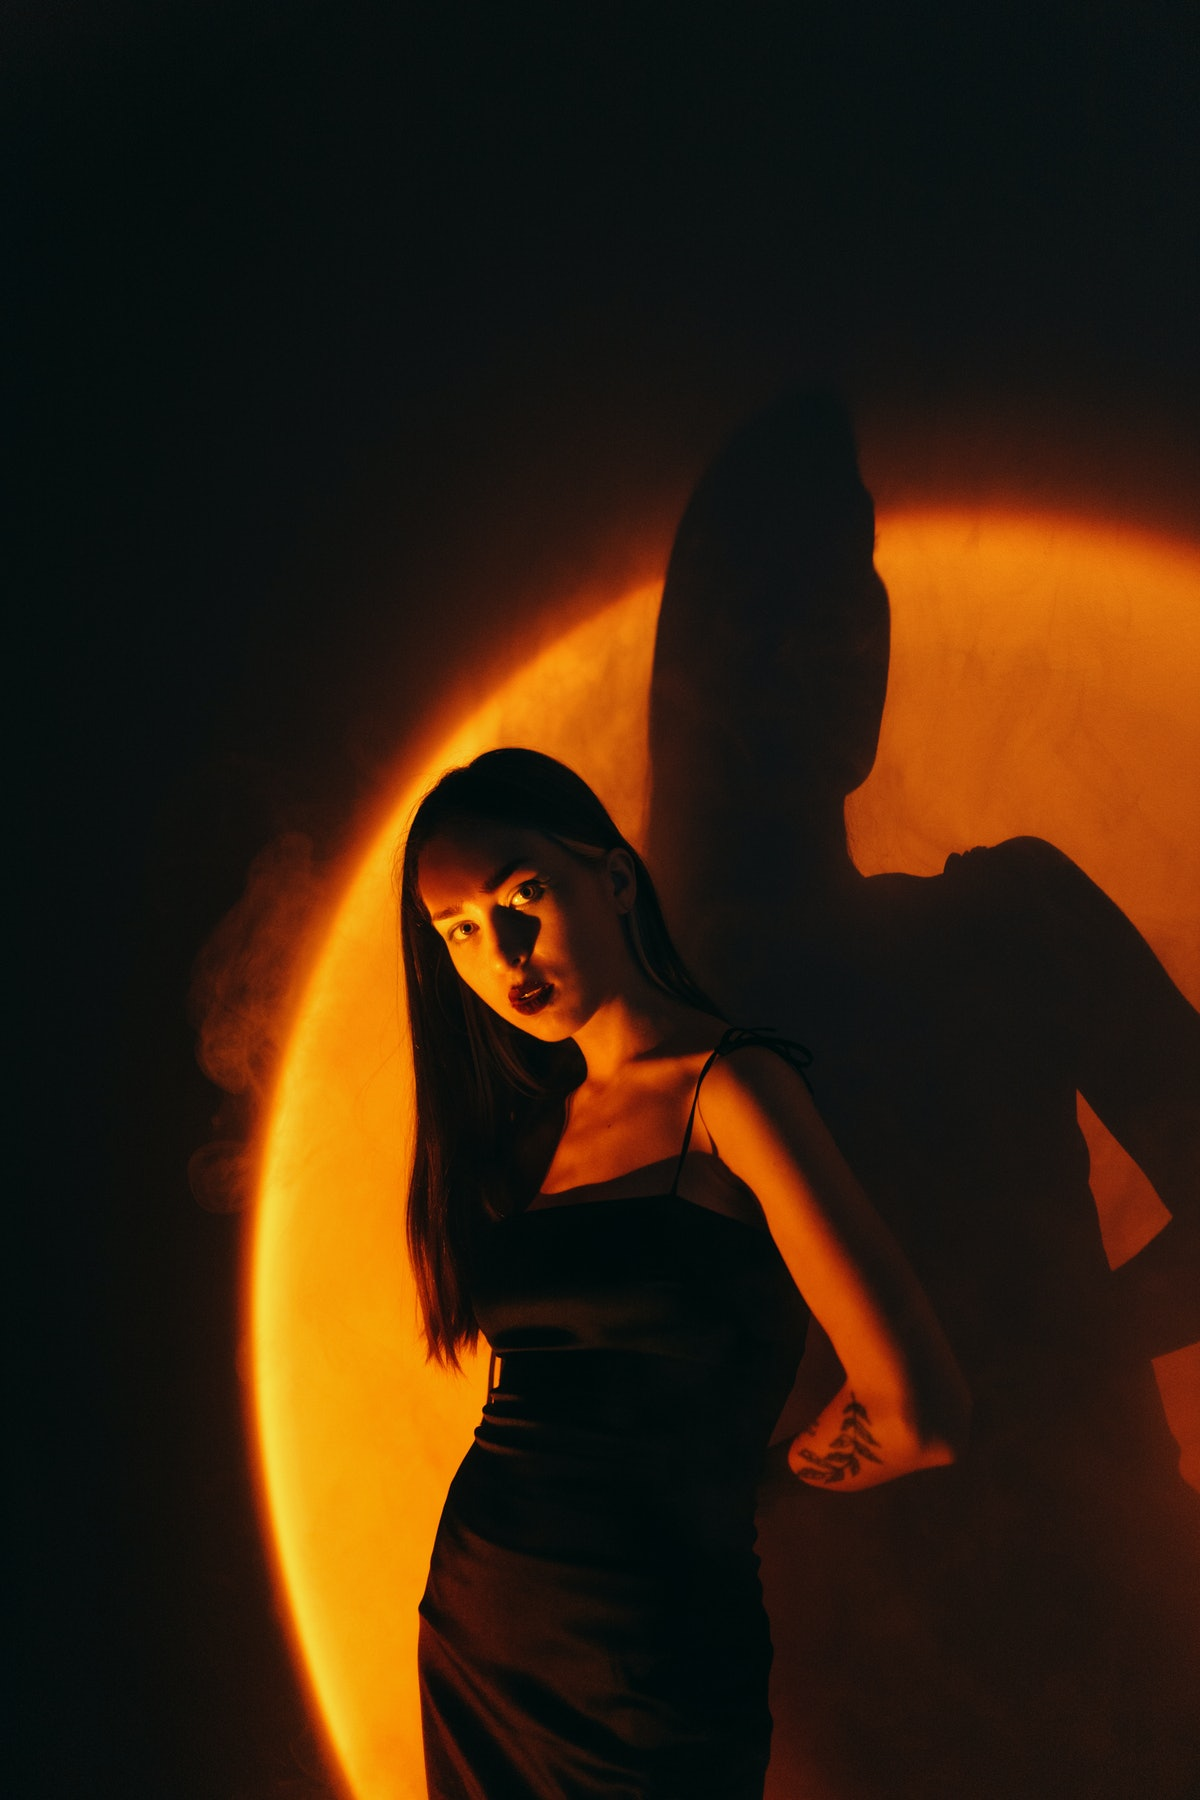 Young woman in black dress standing under the orange light, affected by the September 2021 new moon ...